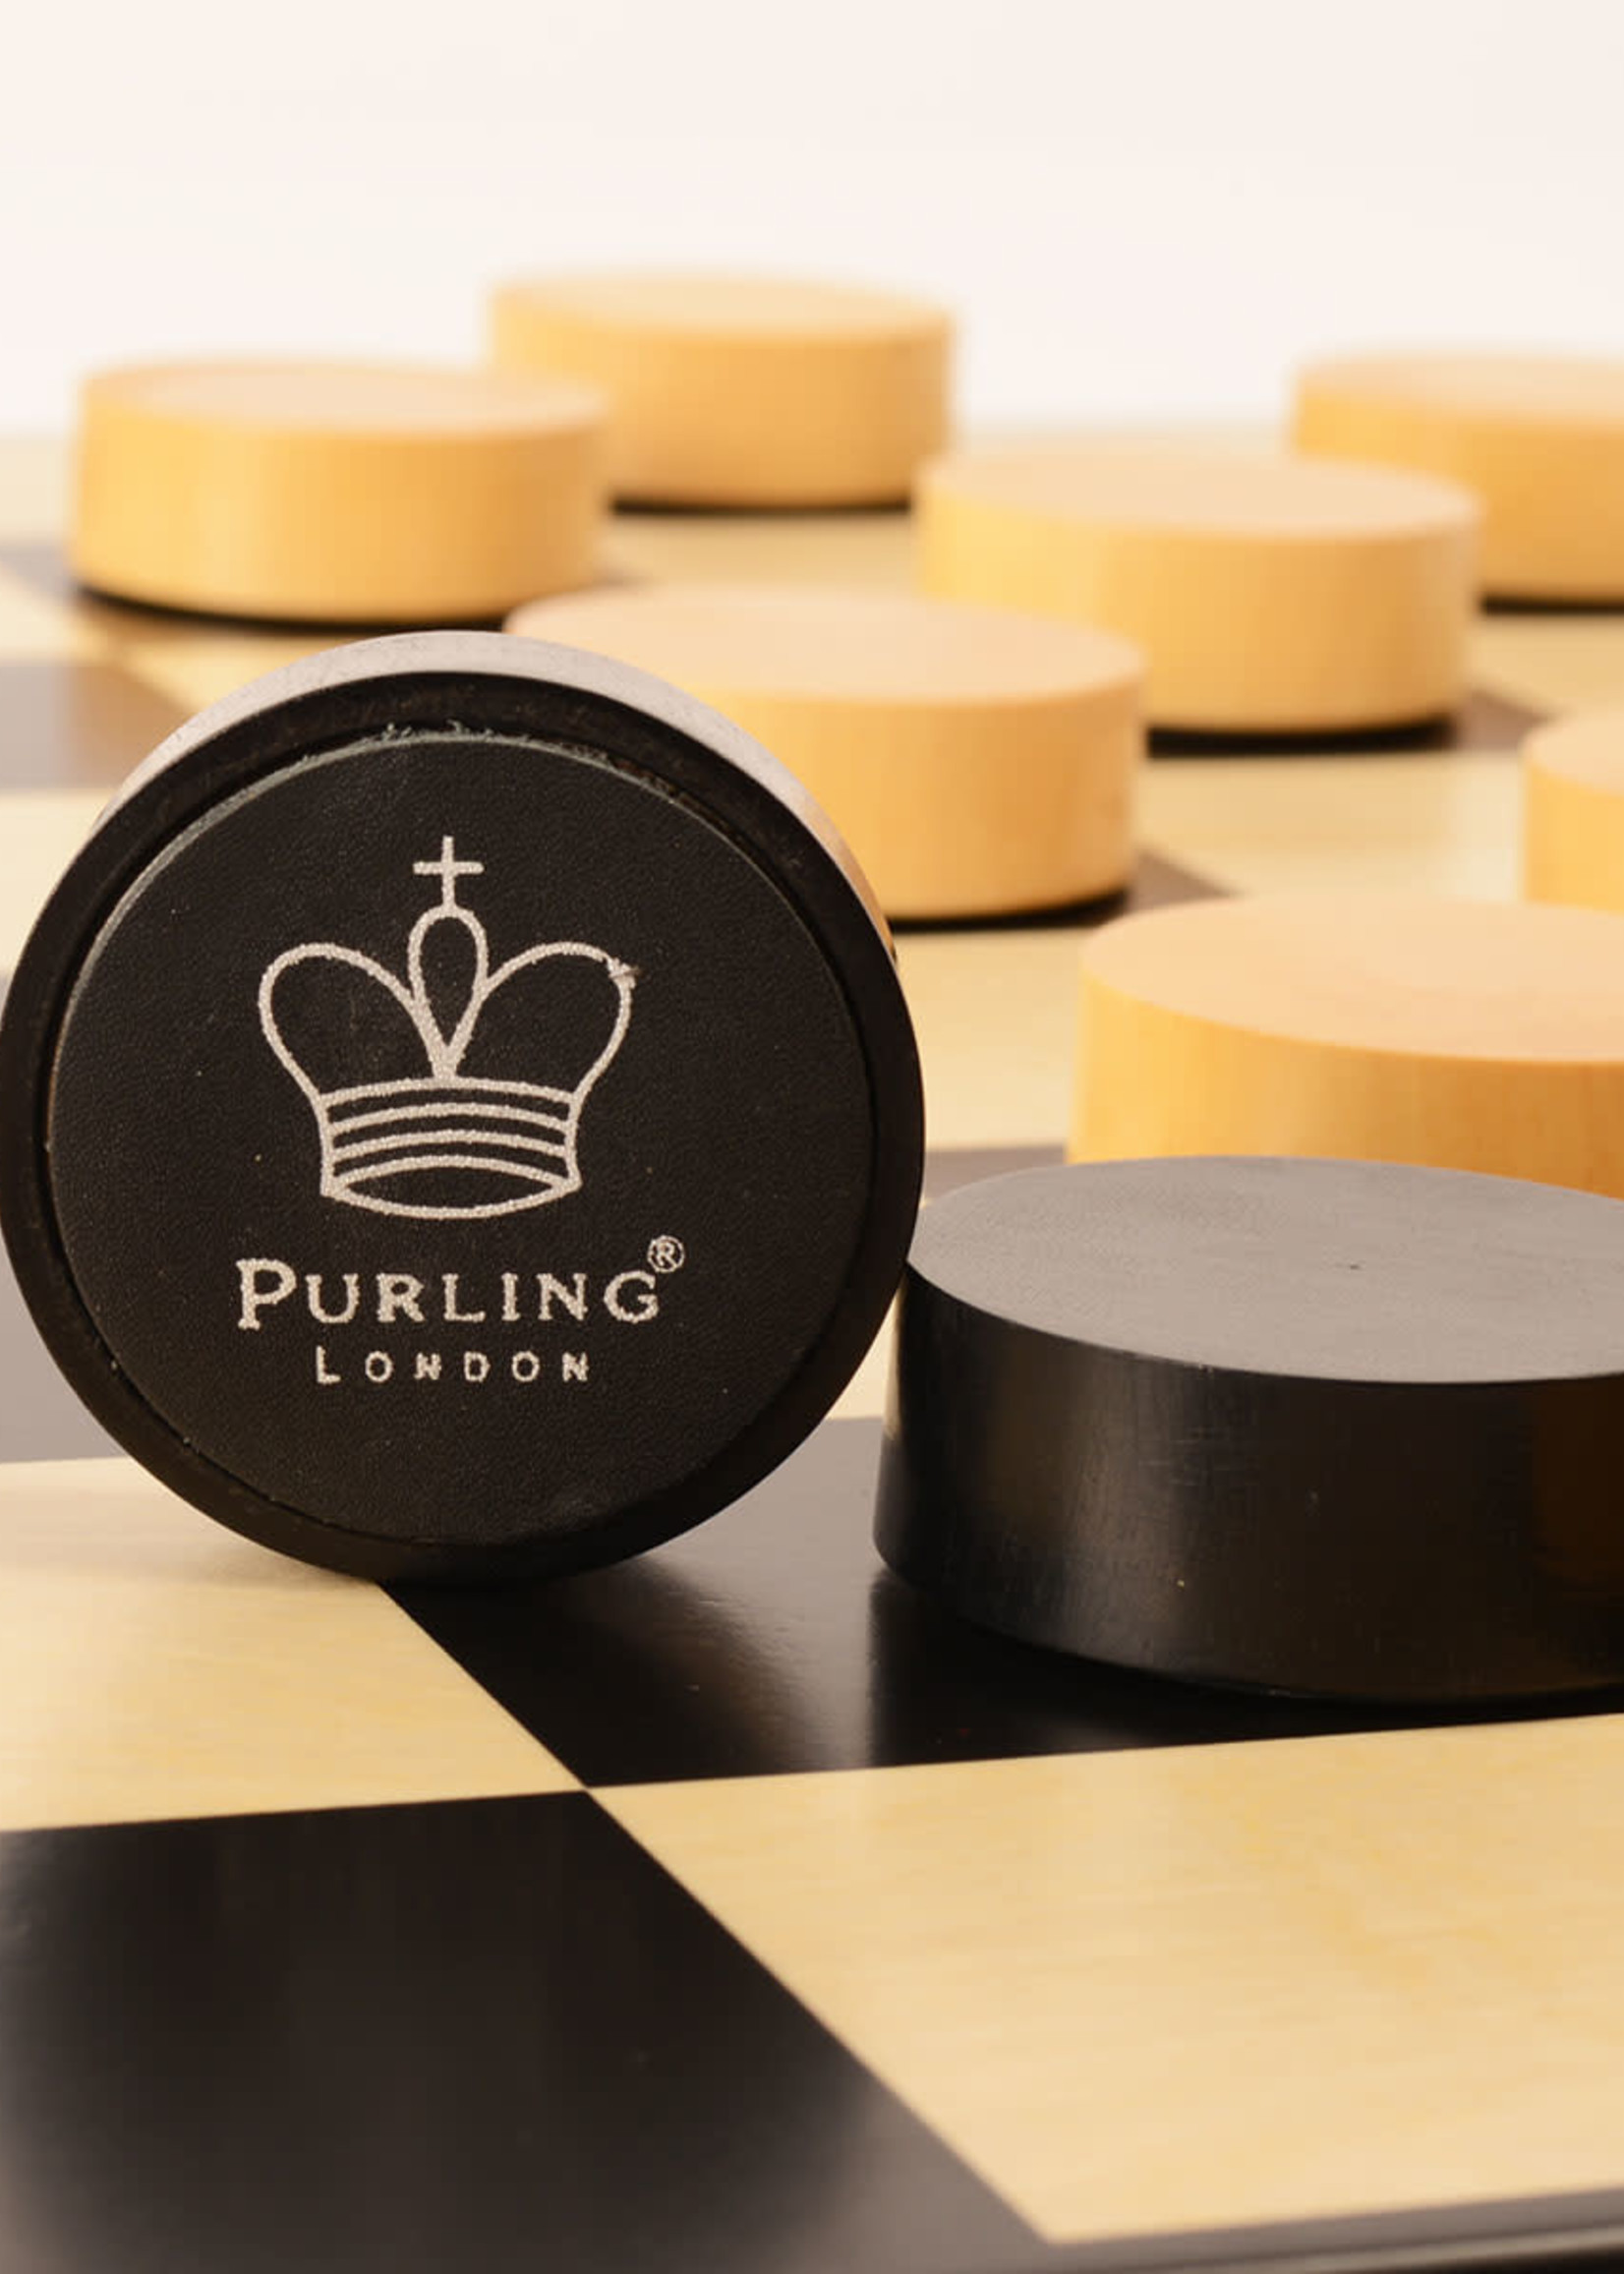 Purling London Purling London Checkers pieces upgrade Gold Black